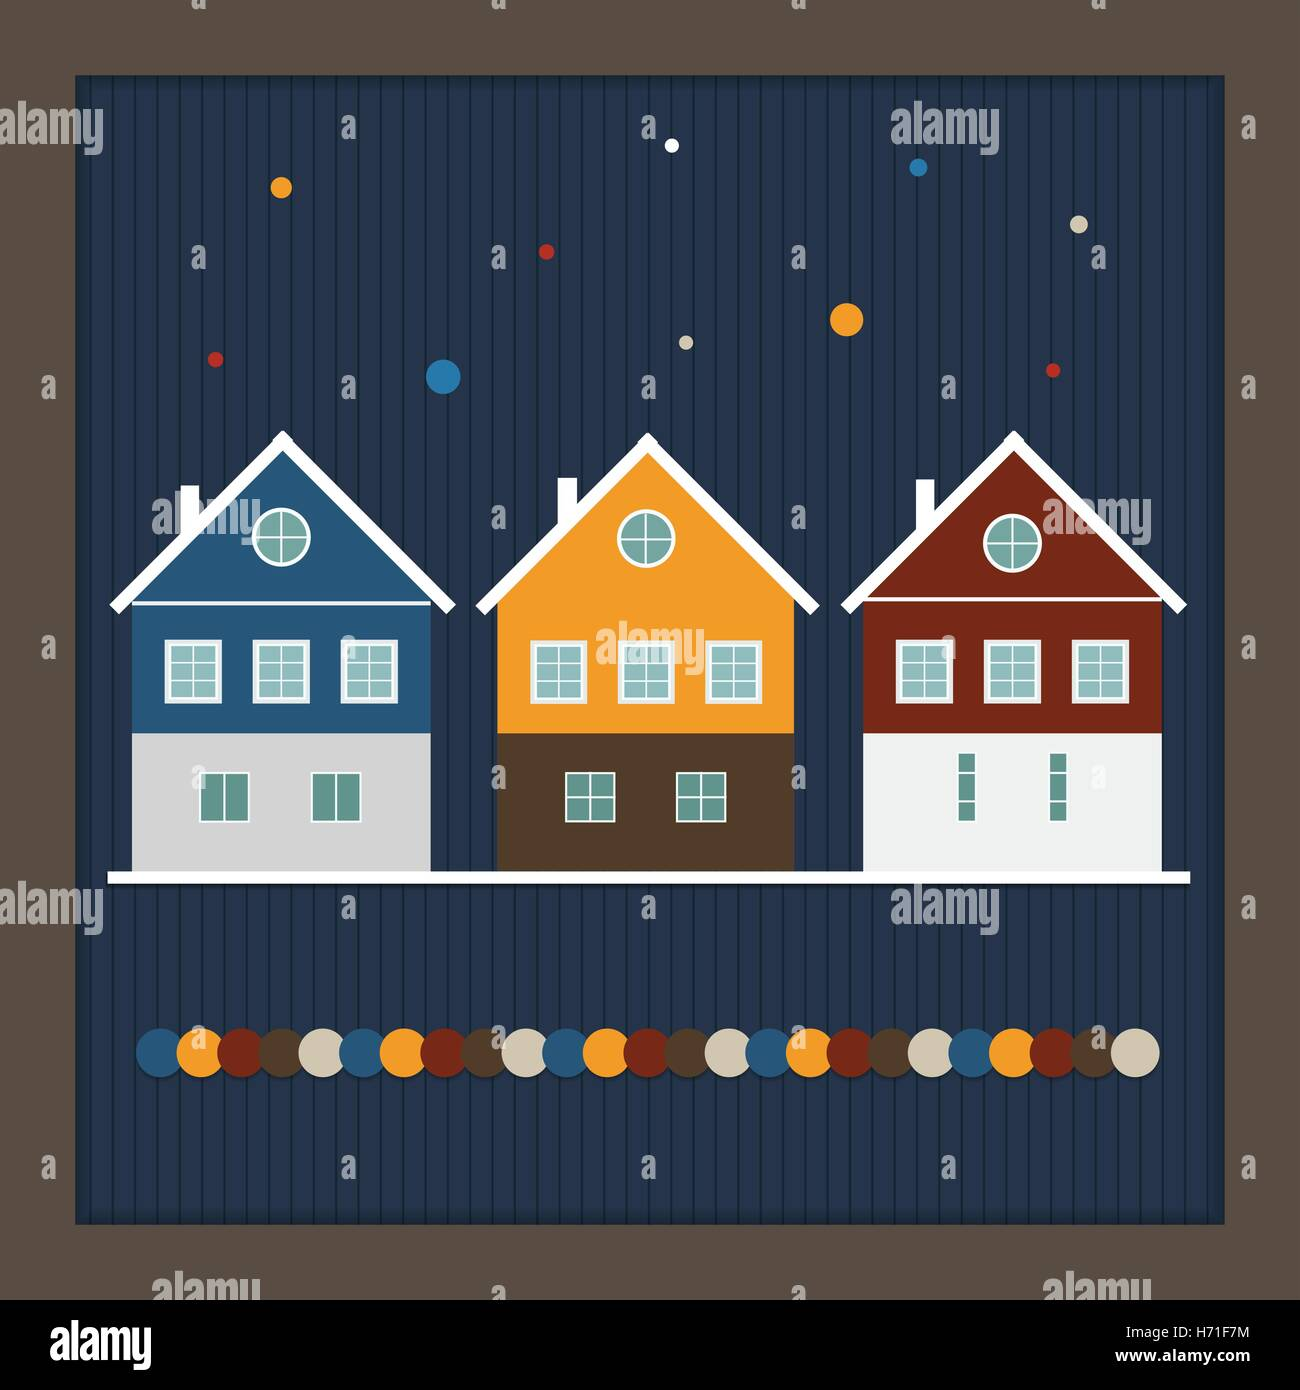 Real Estate Christmas Card Colorful Stock Photos & Real Estate ...